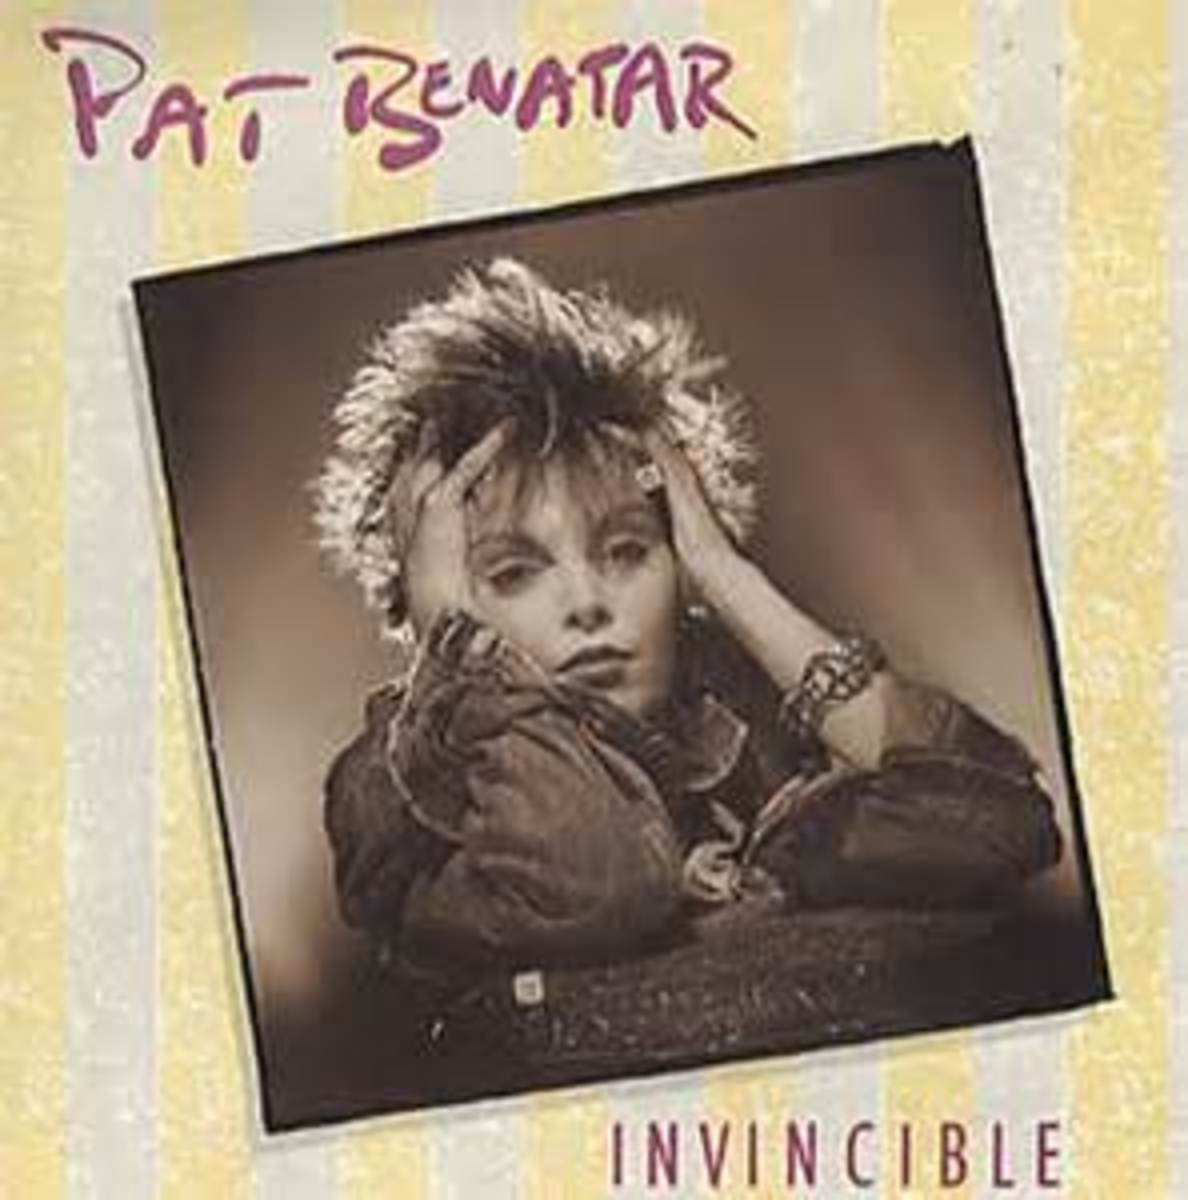 """Click on the link to listen to Pat Benatar's """"Invincible"""""""